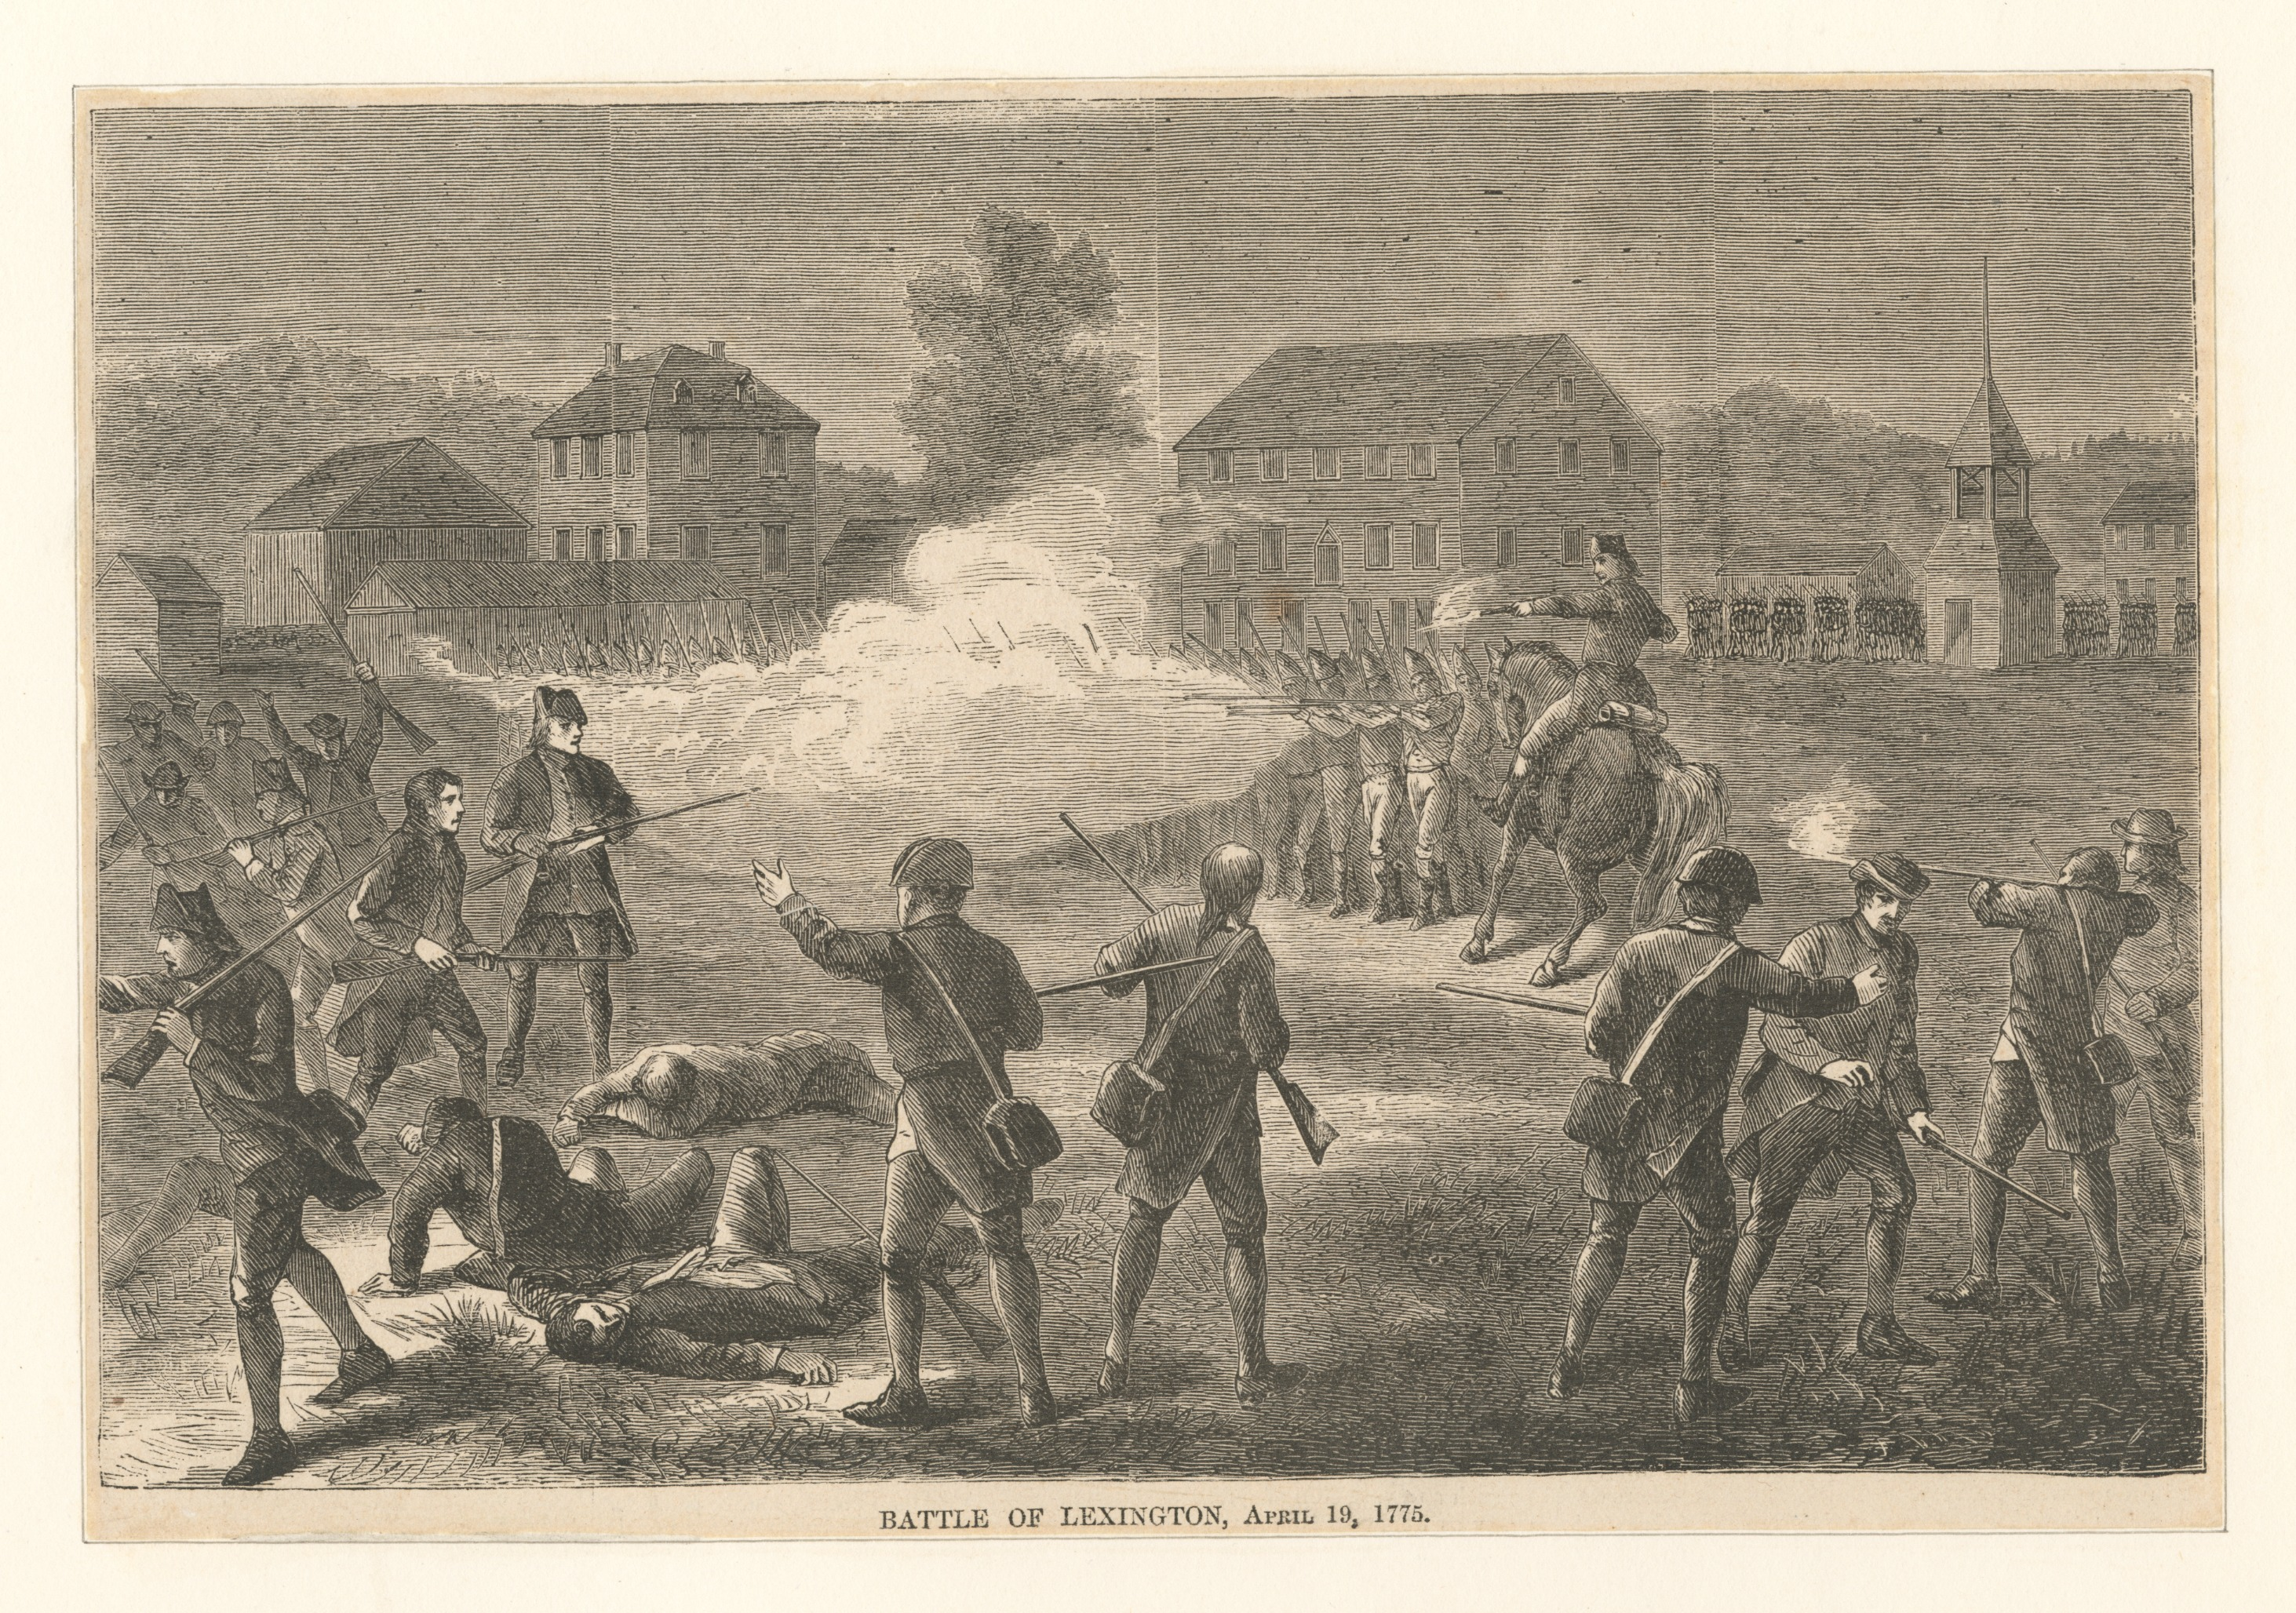 The Battle of Lexington, April 19, 1775, from the collections of the New York Public Library. Printmakers include Henry Bryan Hall and Luigi Schiavonetti.